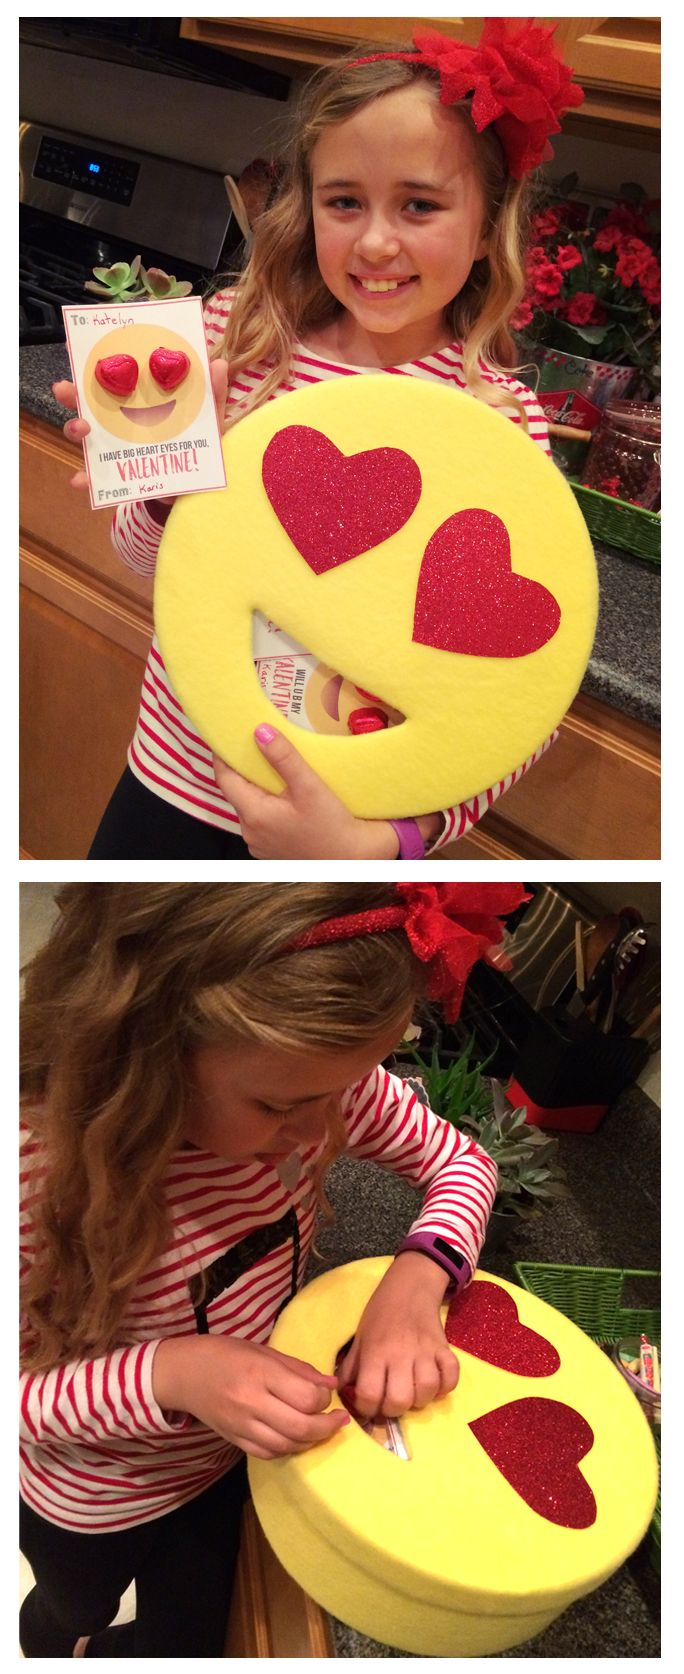 Heart Eyes Emoji Valentine's box. We found the coordinating Valentines at http://www.landeeseelandeedo.com/2016/01/emoji-printable-valentines.html  We used an old hat box. Cut out mouth, covered with yellow flannel (hot glued), and cut heart eyes out of red glitter cardstock. This turned out CUTE<3